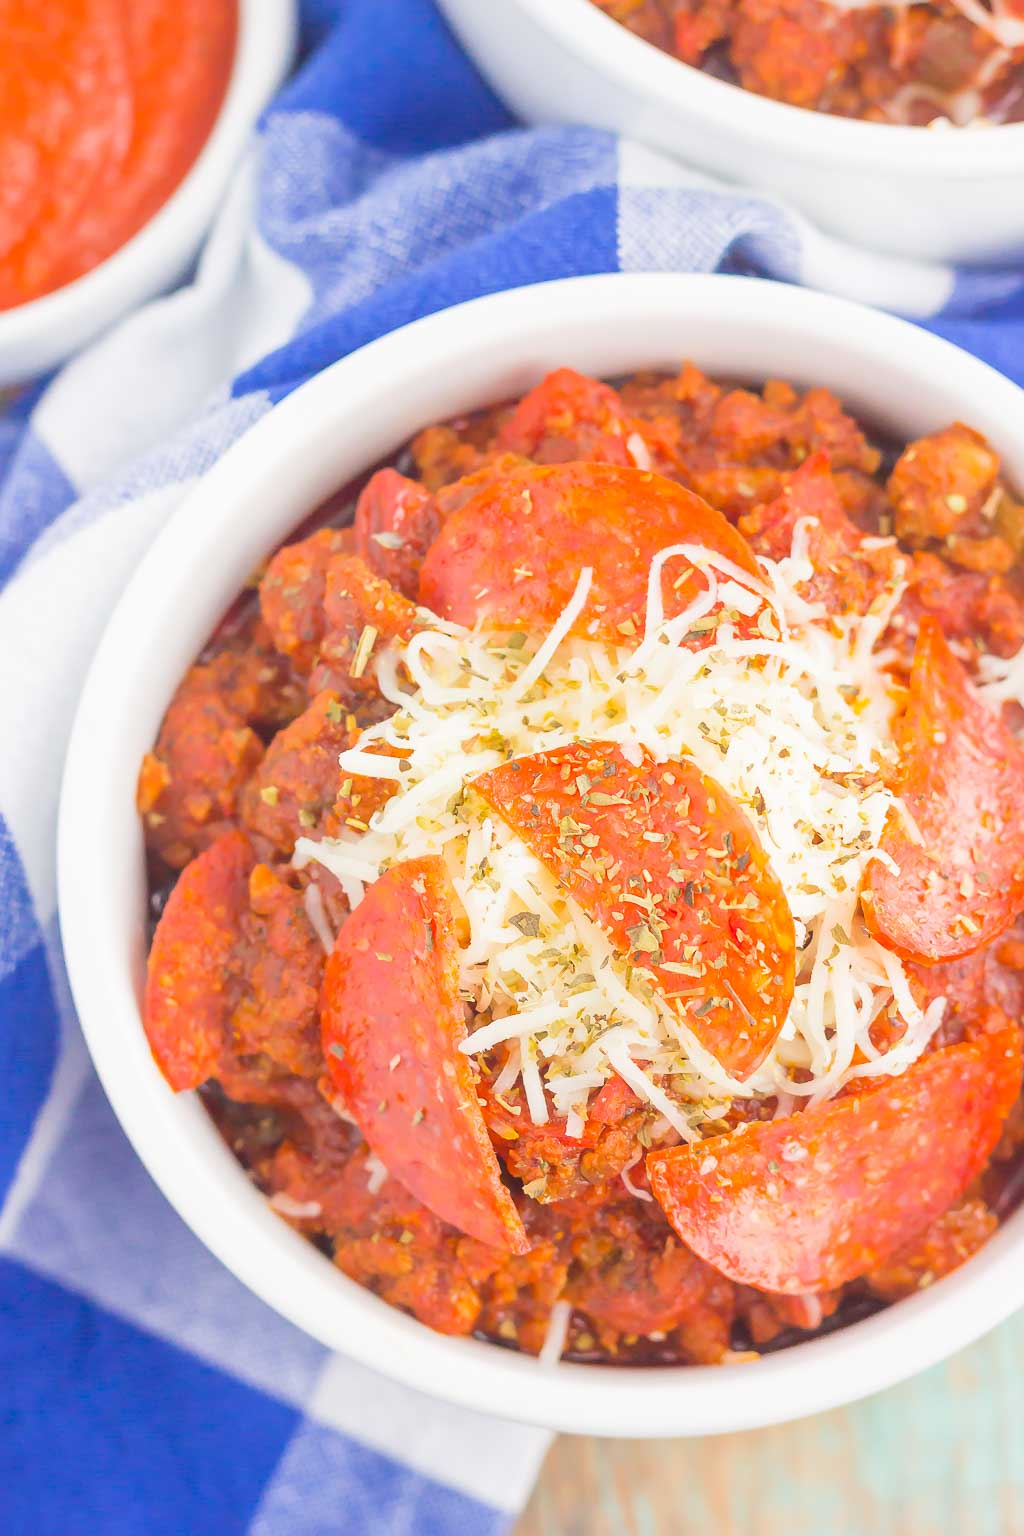 Overhead view of slow cooker no bean pizza chili in a white ramekin.